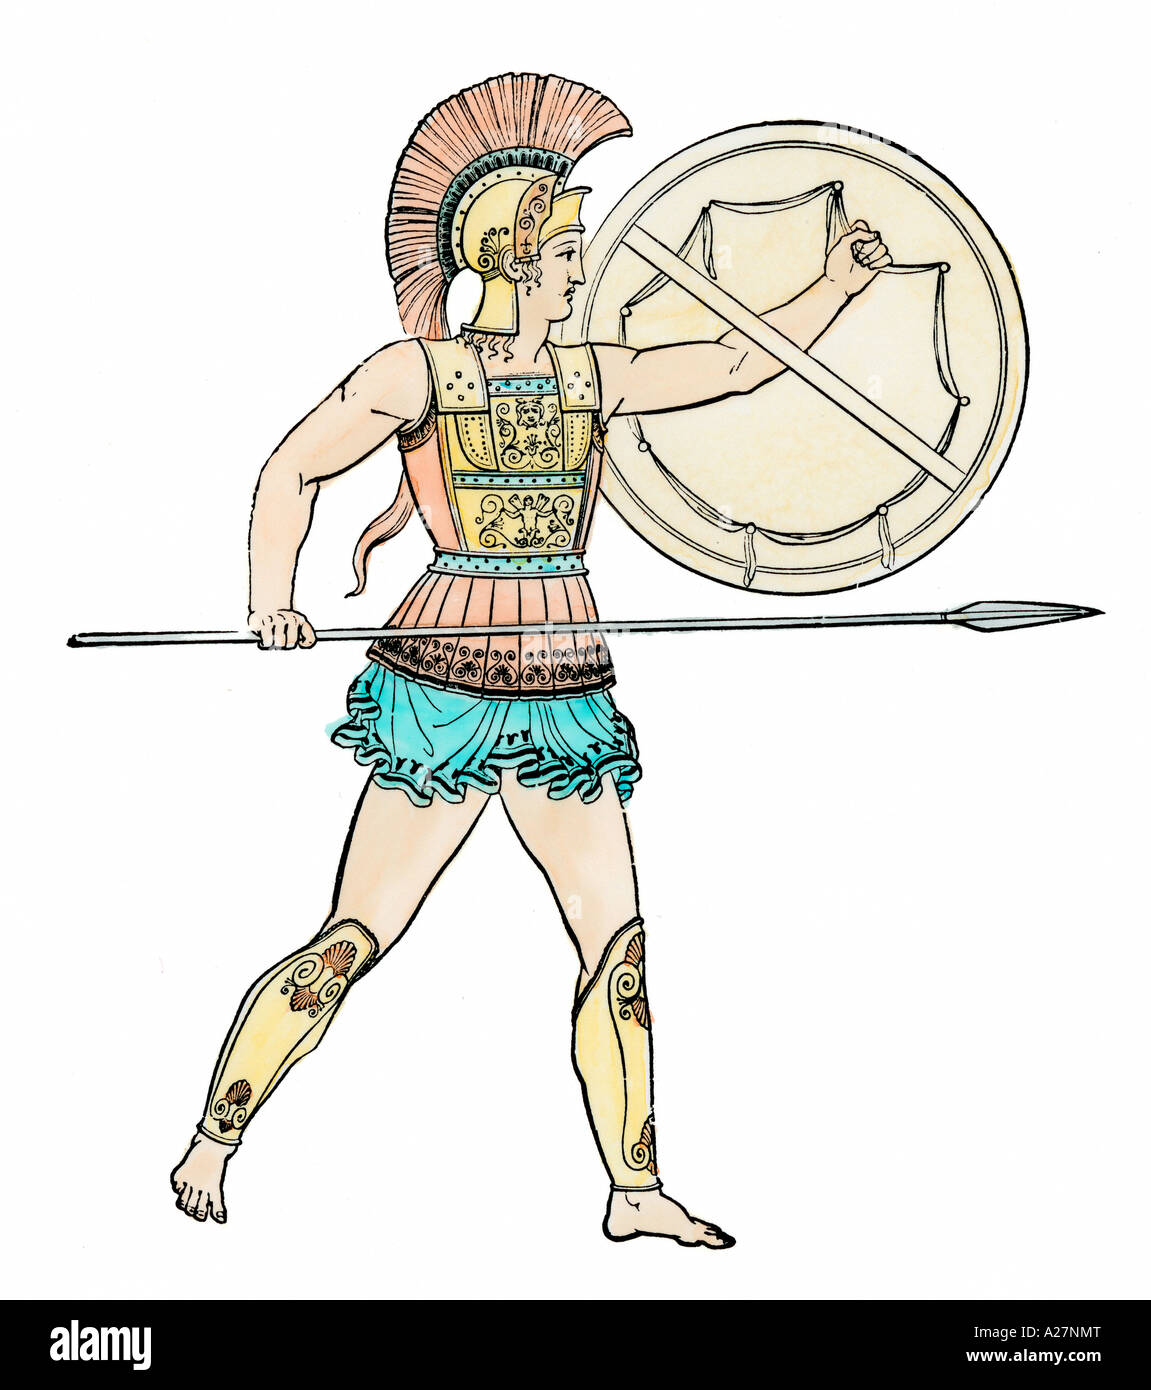 Warrior of ancient Greece. Hand-colored woodcut - Stock Image